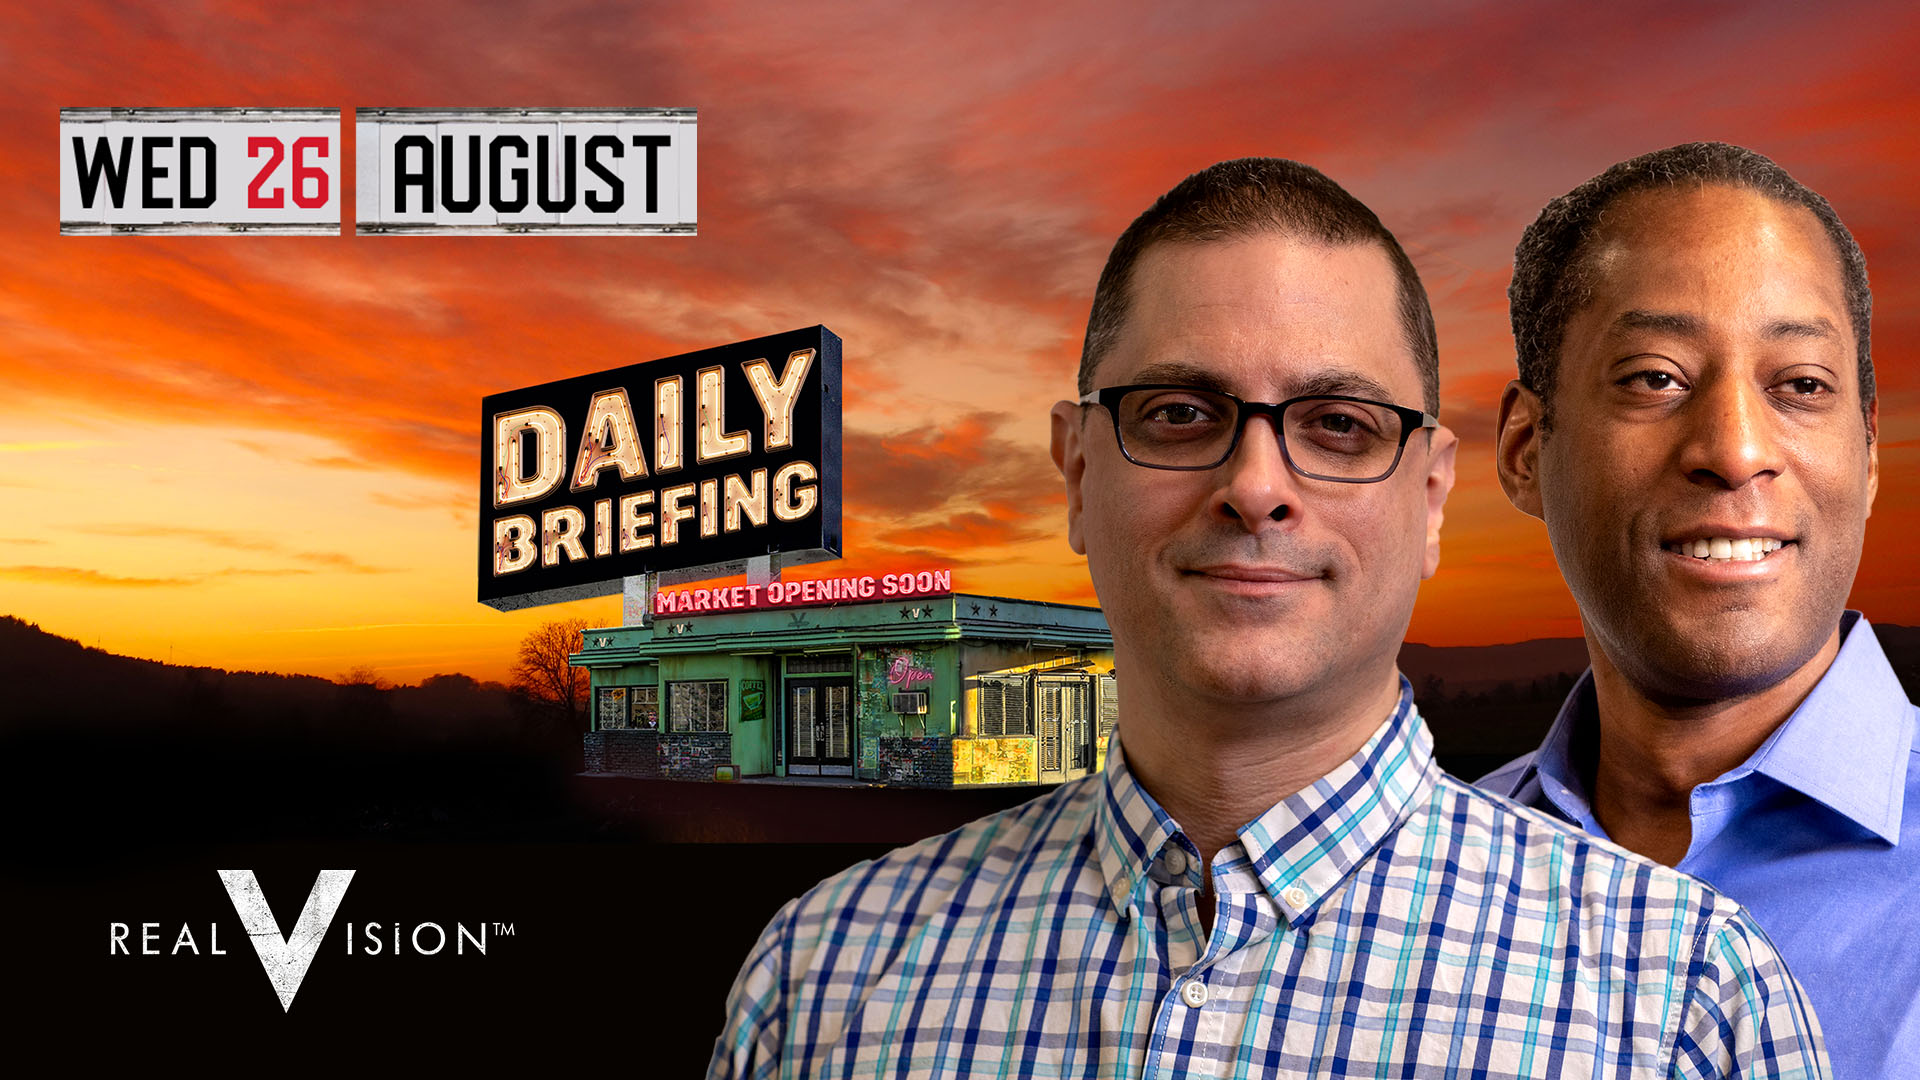 Real Vision Blog: Daily Briefing - A Chokehold on Credit